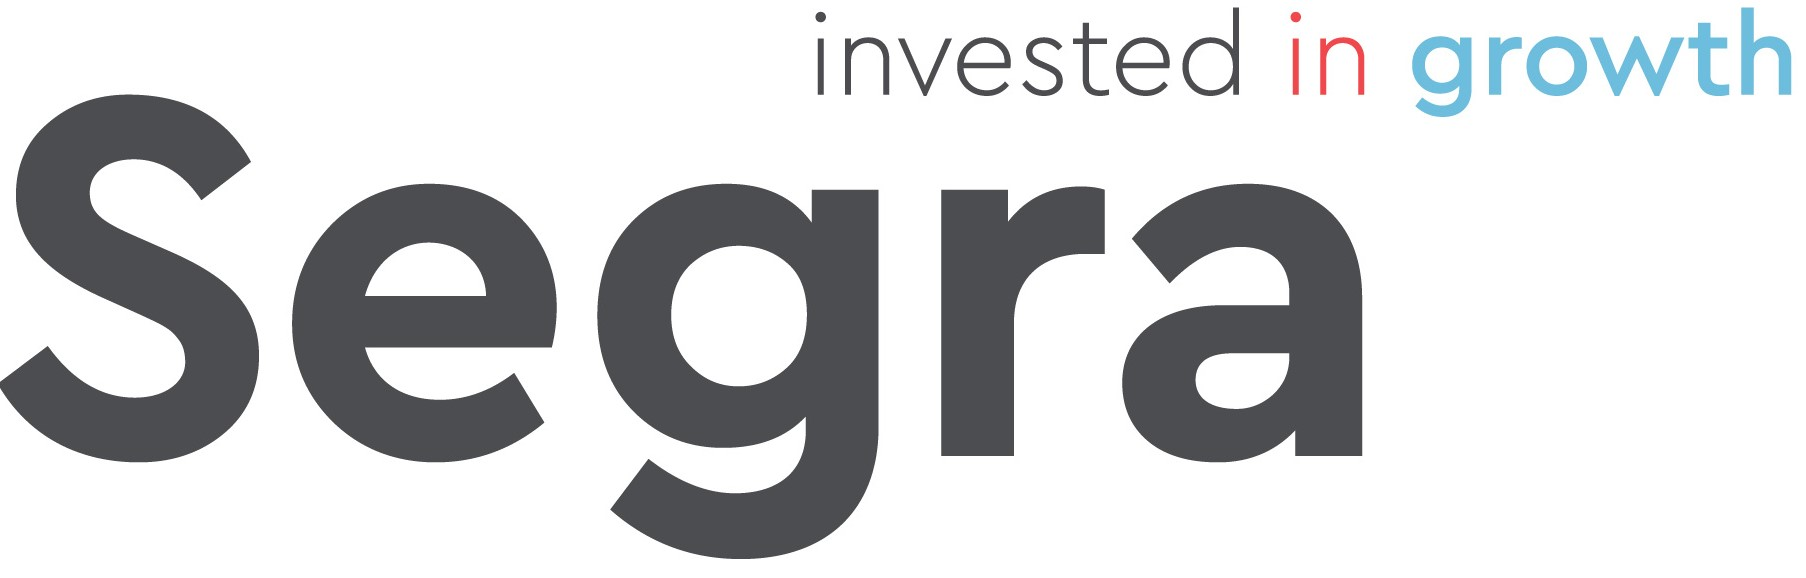 Segra Enters Agreement Making BioAgronomics Group's Premium Cannabis Cultivar Portfolio Available to Licensed Producers Across Canada and Select International Markets